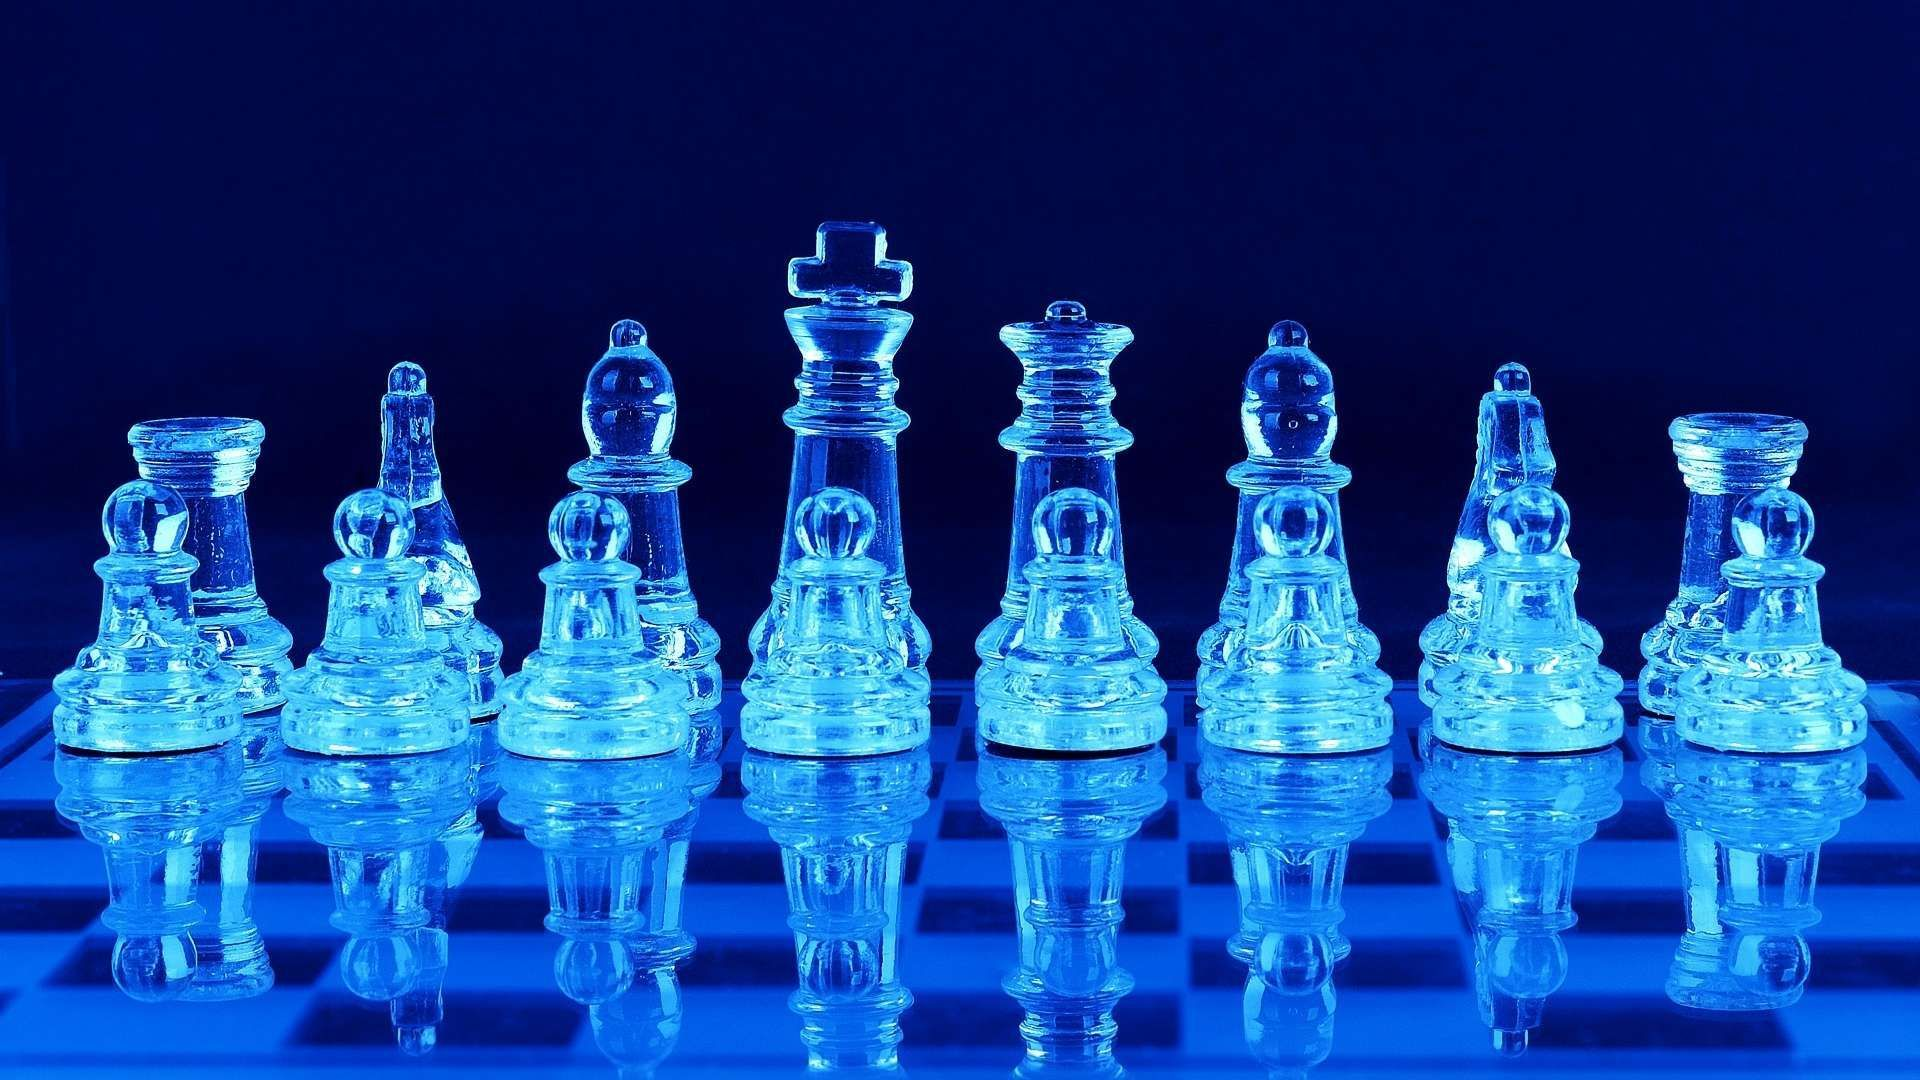 chess game images hd